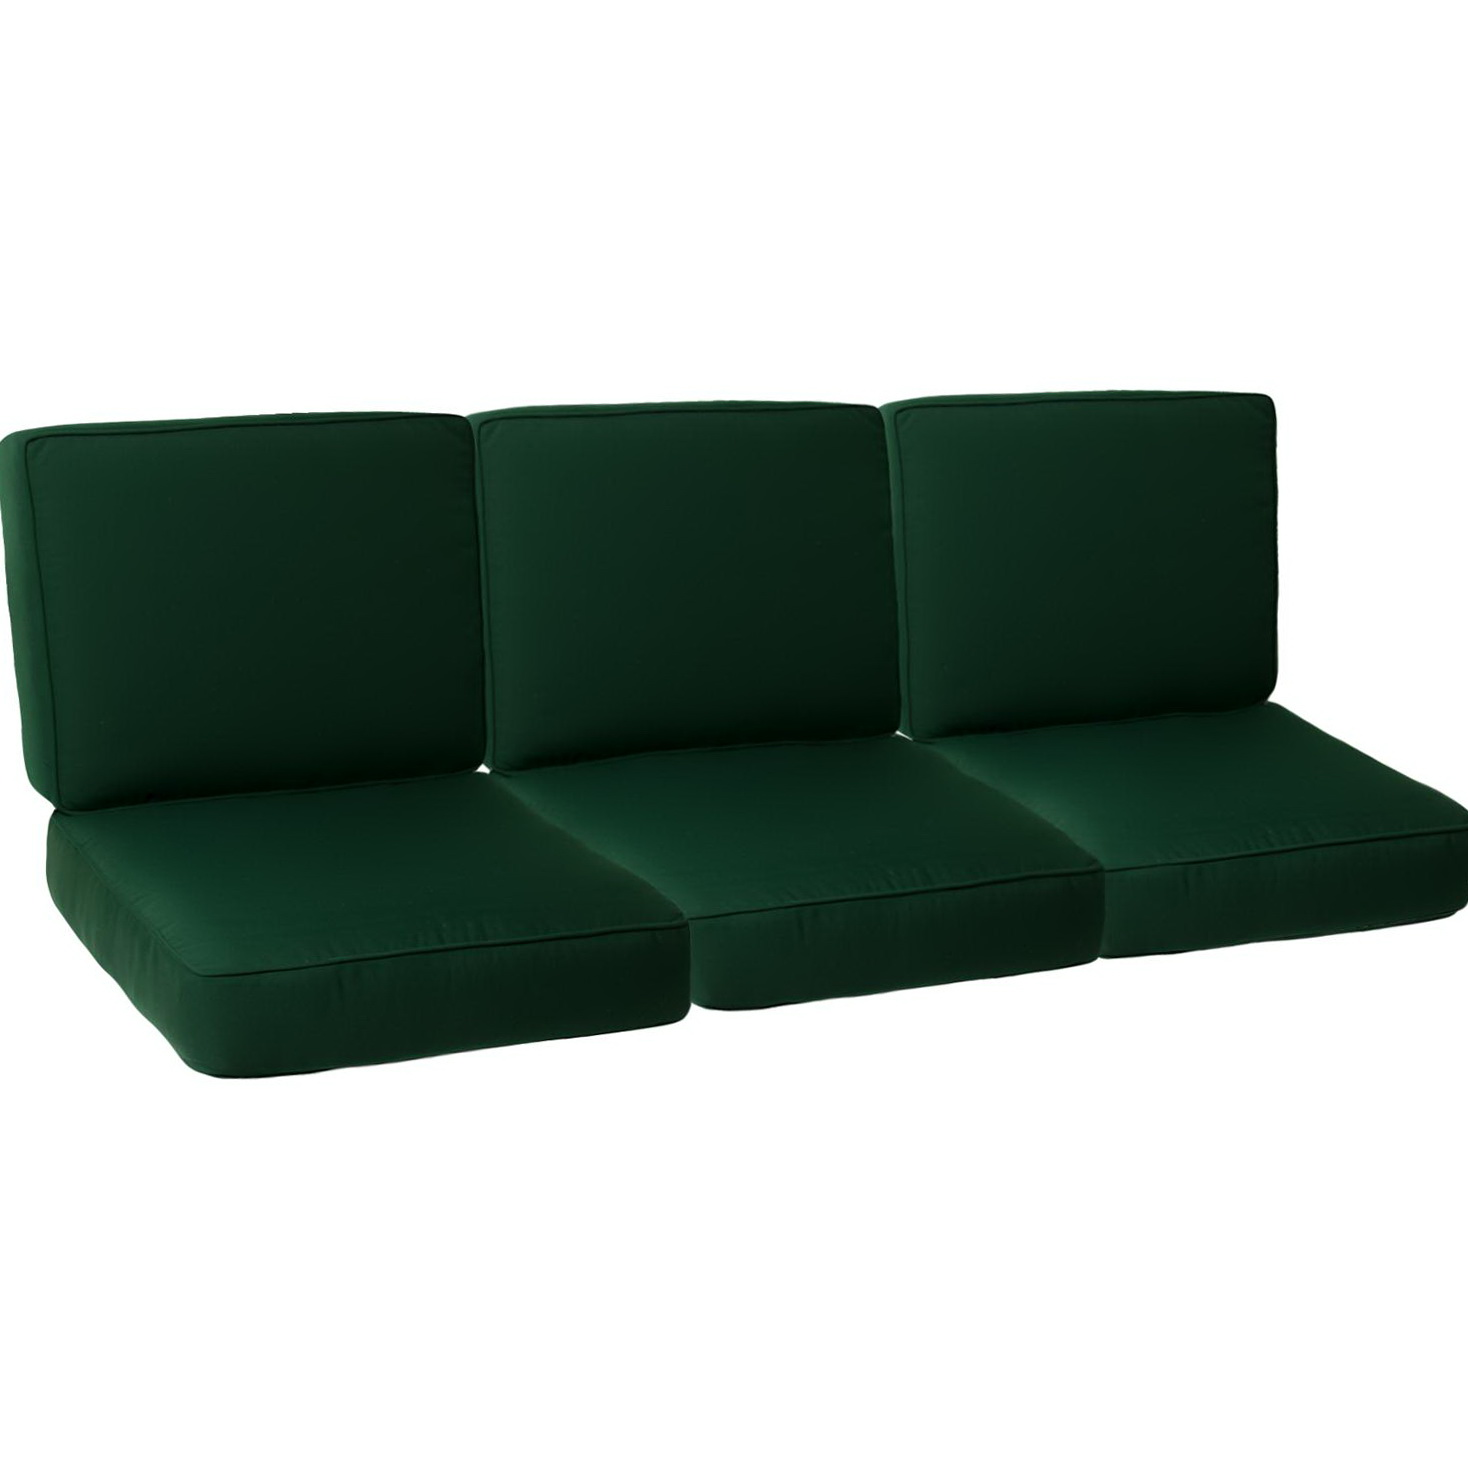 Replacement Sofa Cushions Indoor